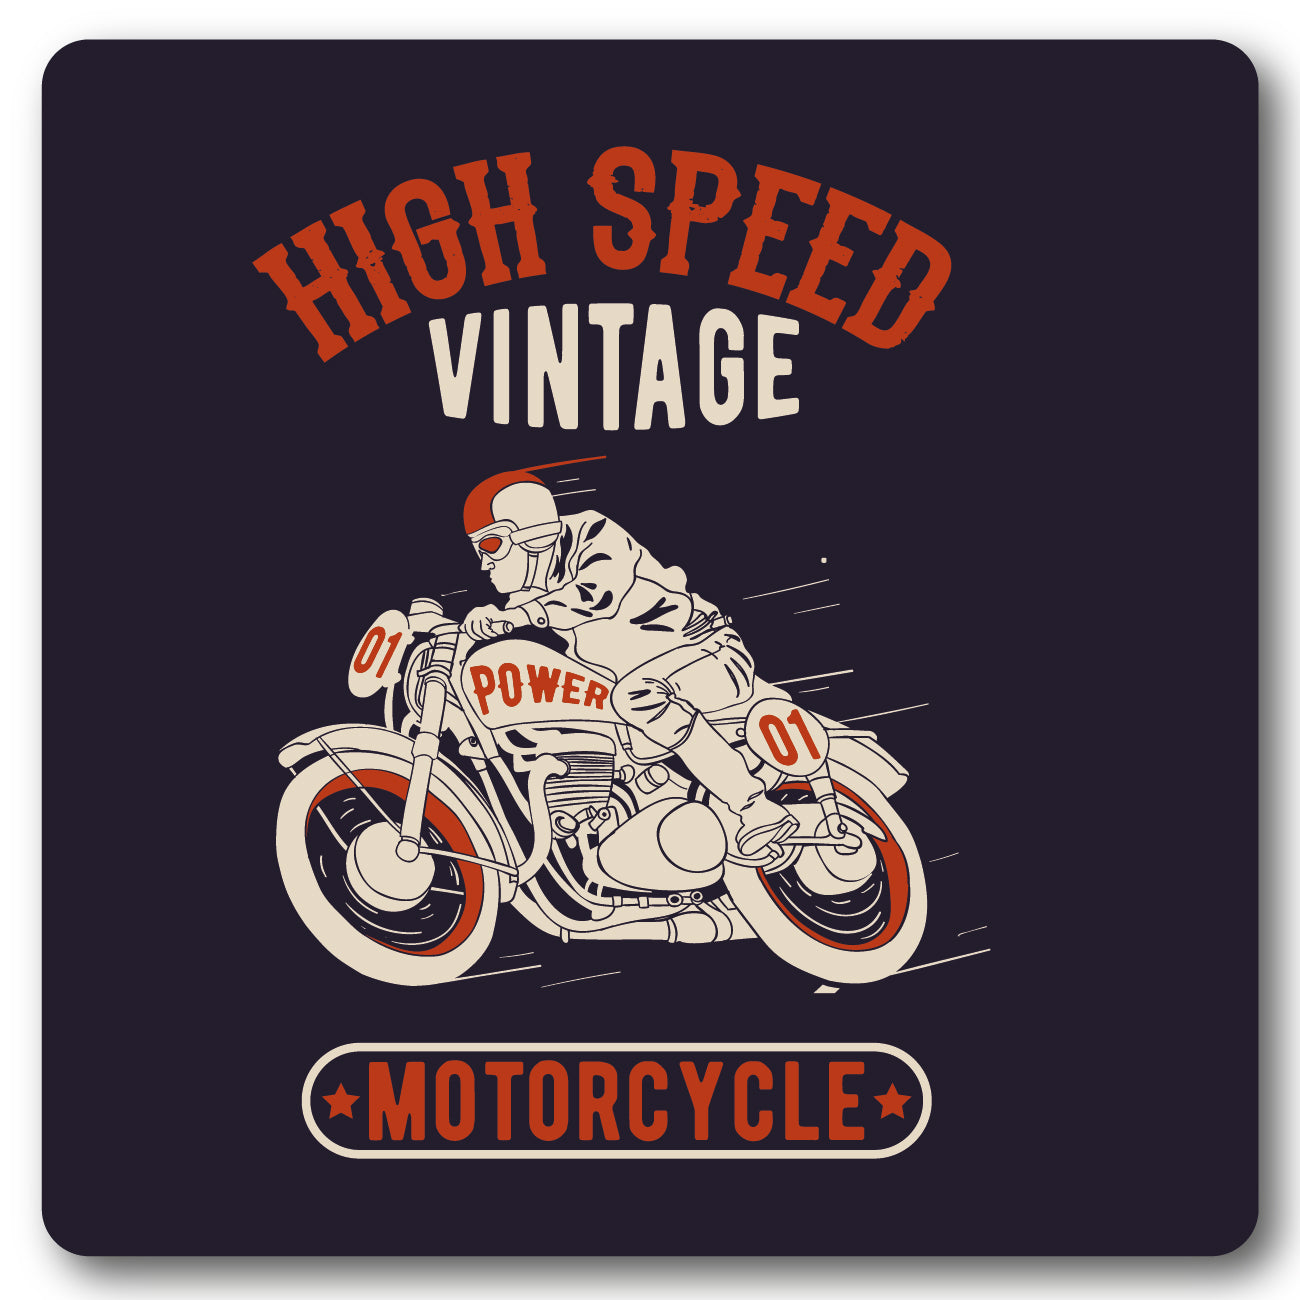 High Speed Vintage Motorcycle Metal Wall Sign